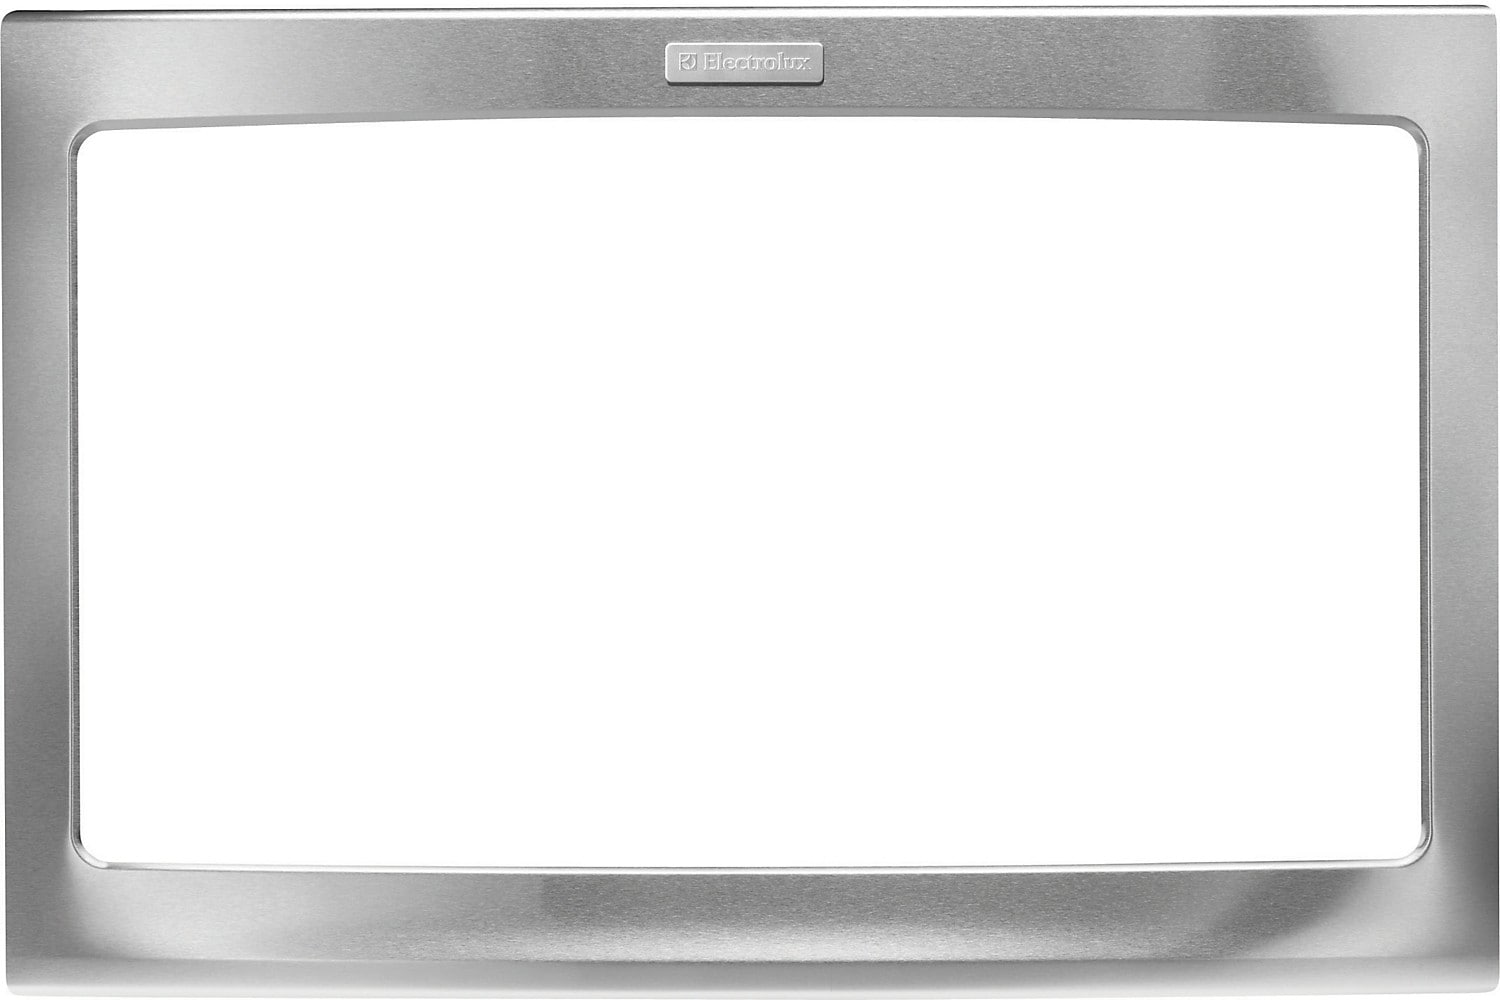 Appliance Accessories - Ensemble Electrolux d'encastrement pour four à micro-ondes de 30 po - acier inoxydable